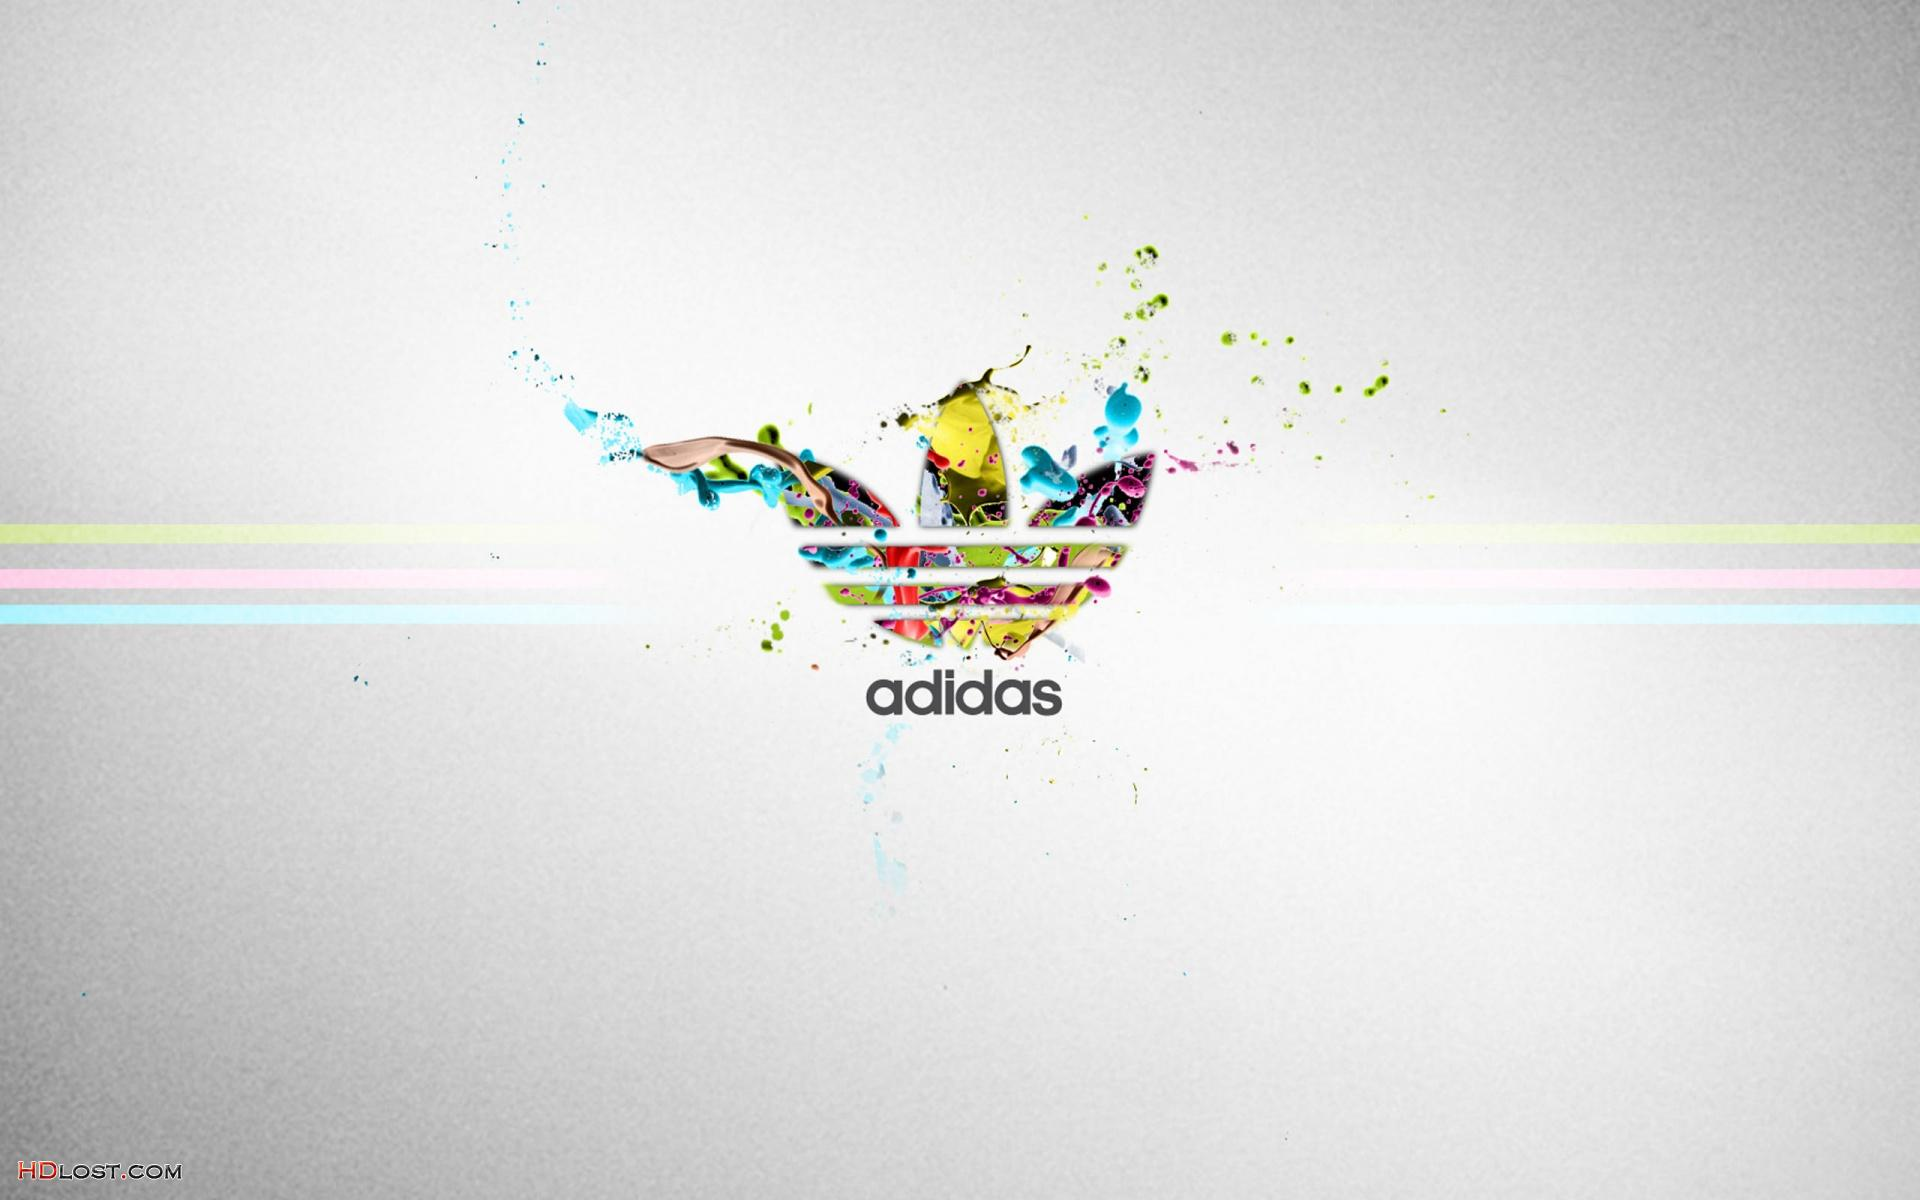 Adidas Wallpapers High Quality Download 1920x1200